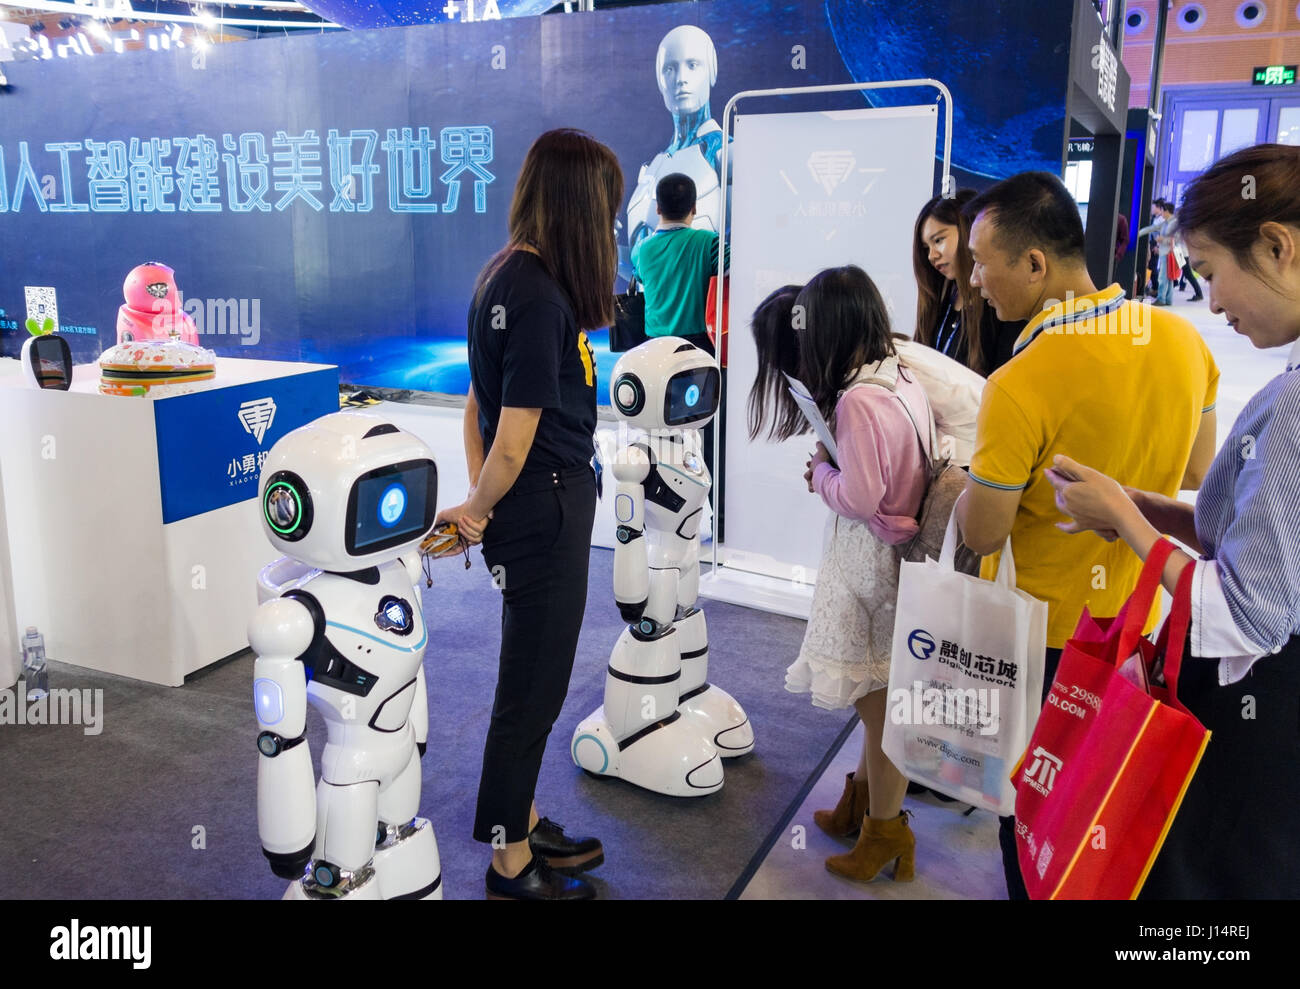 robots surrounded by visitors